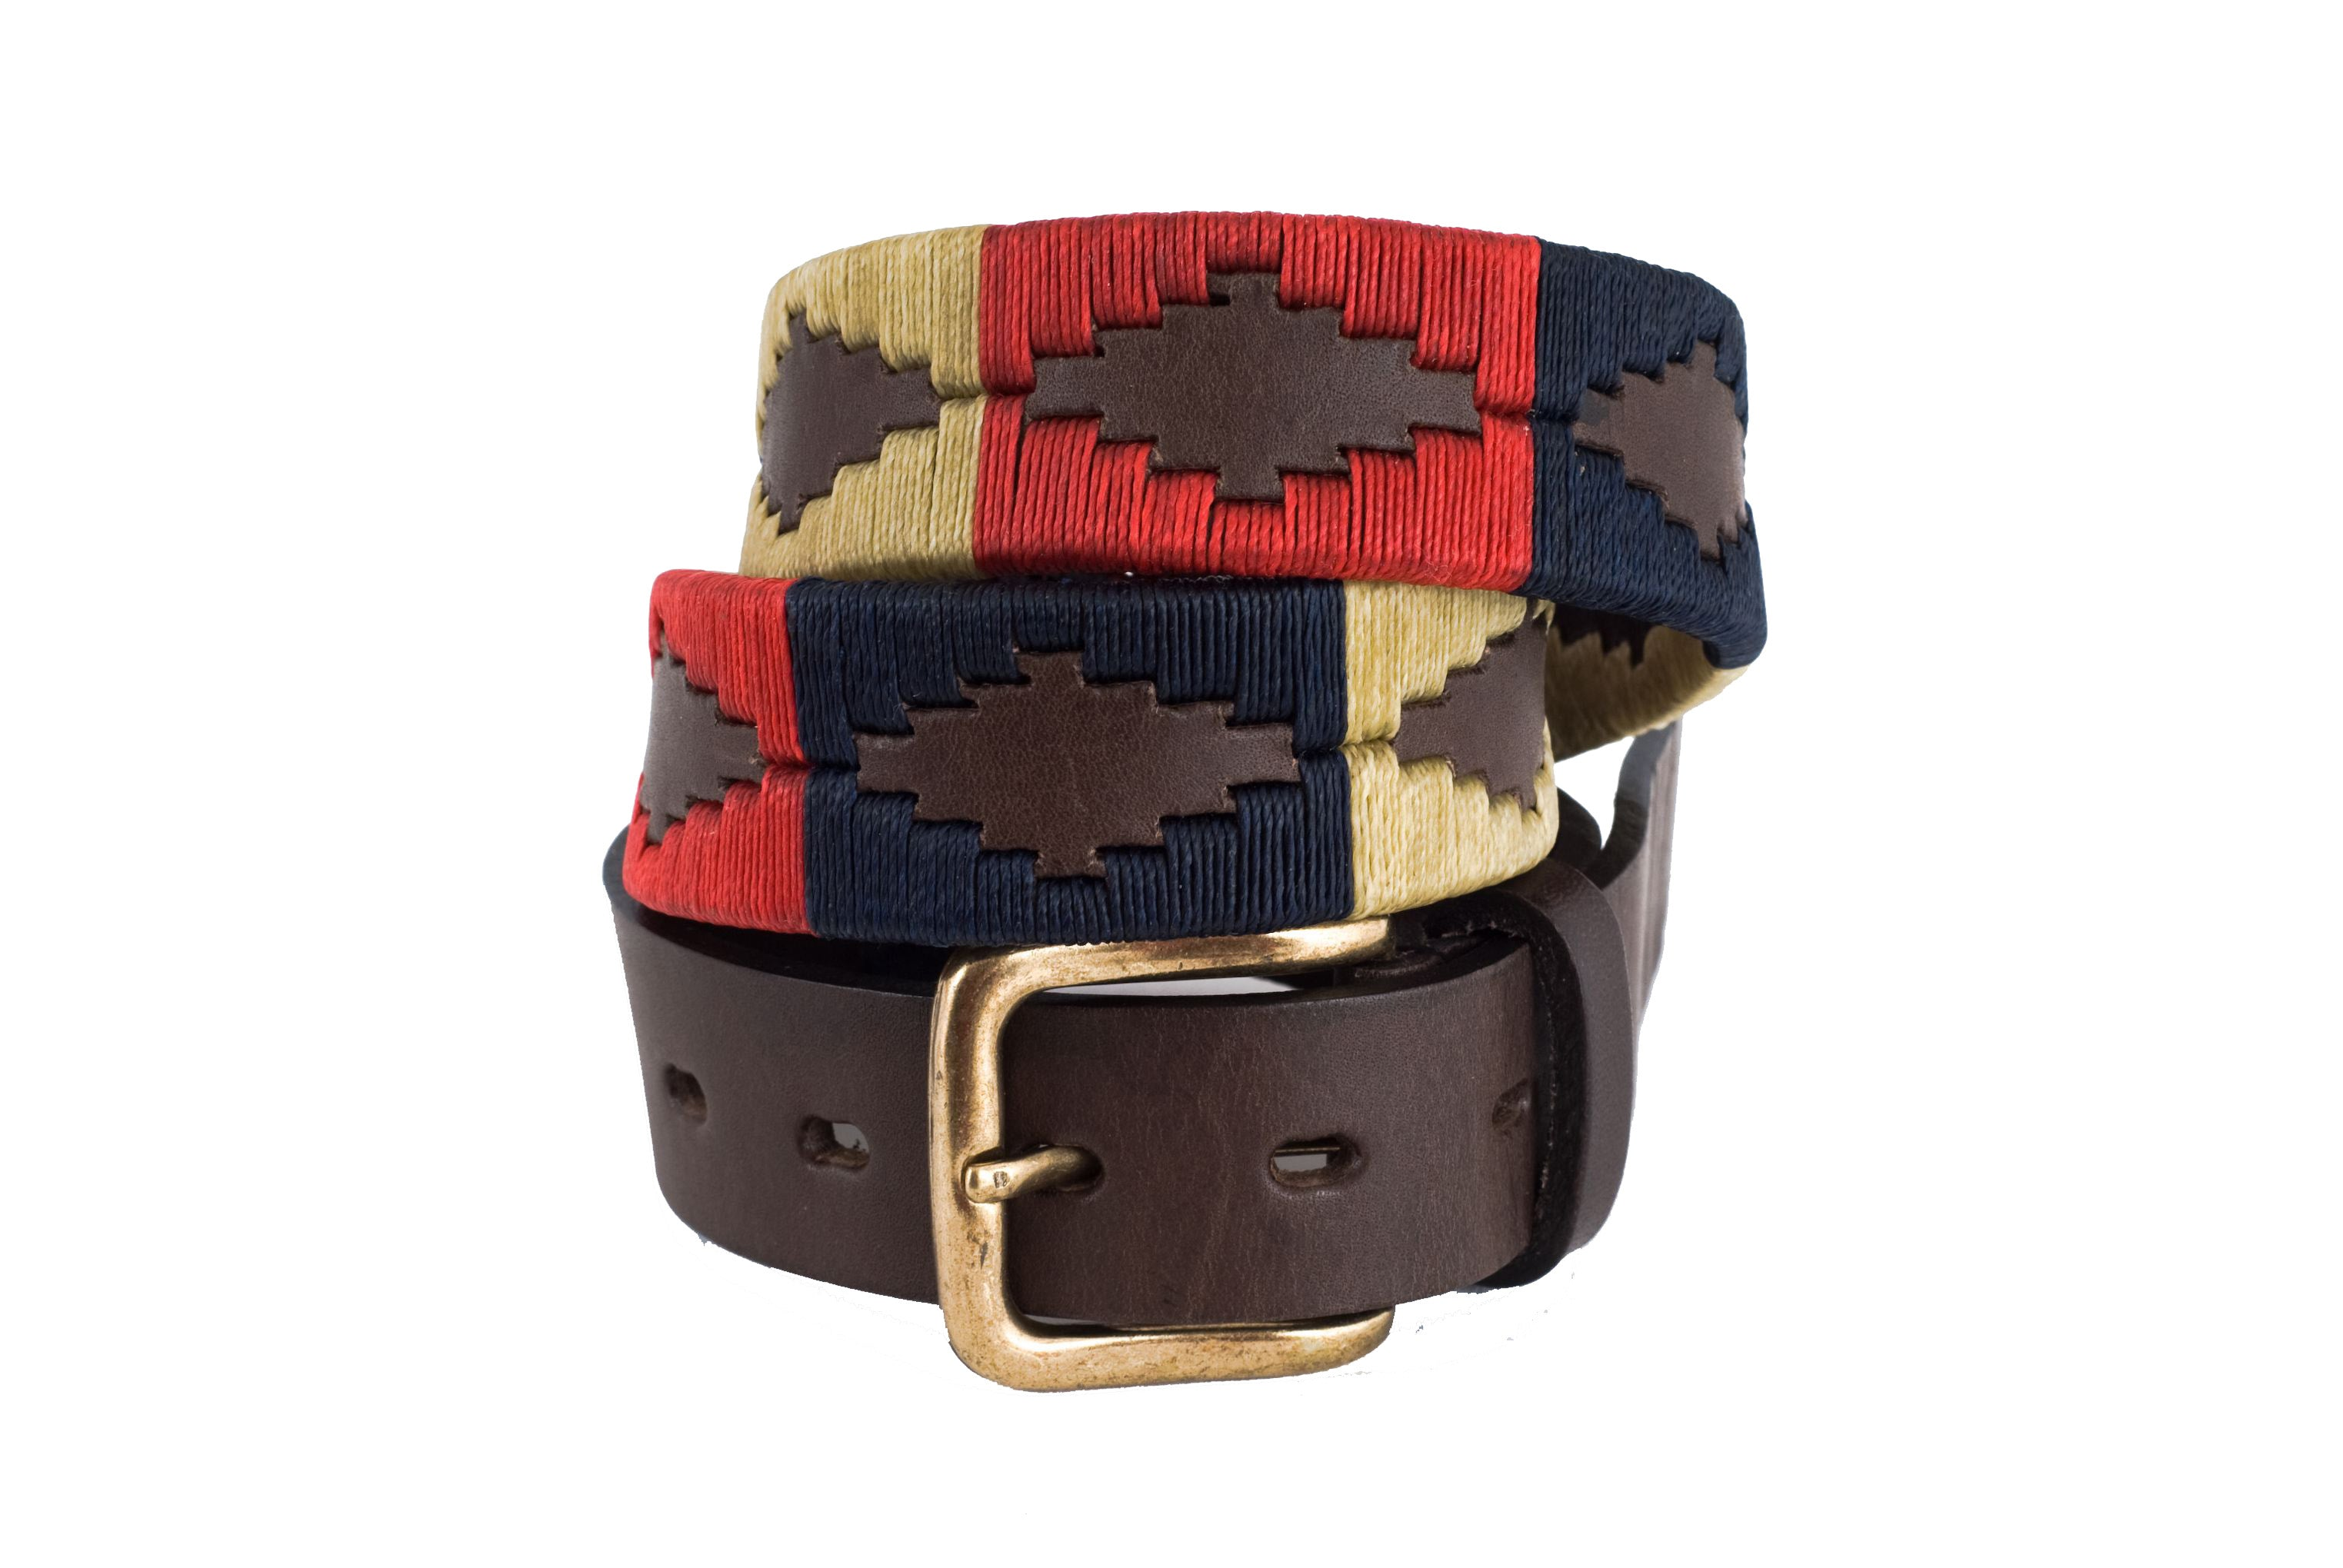 Pioneros Brown Polo Belt in Navy/Cream/Red